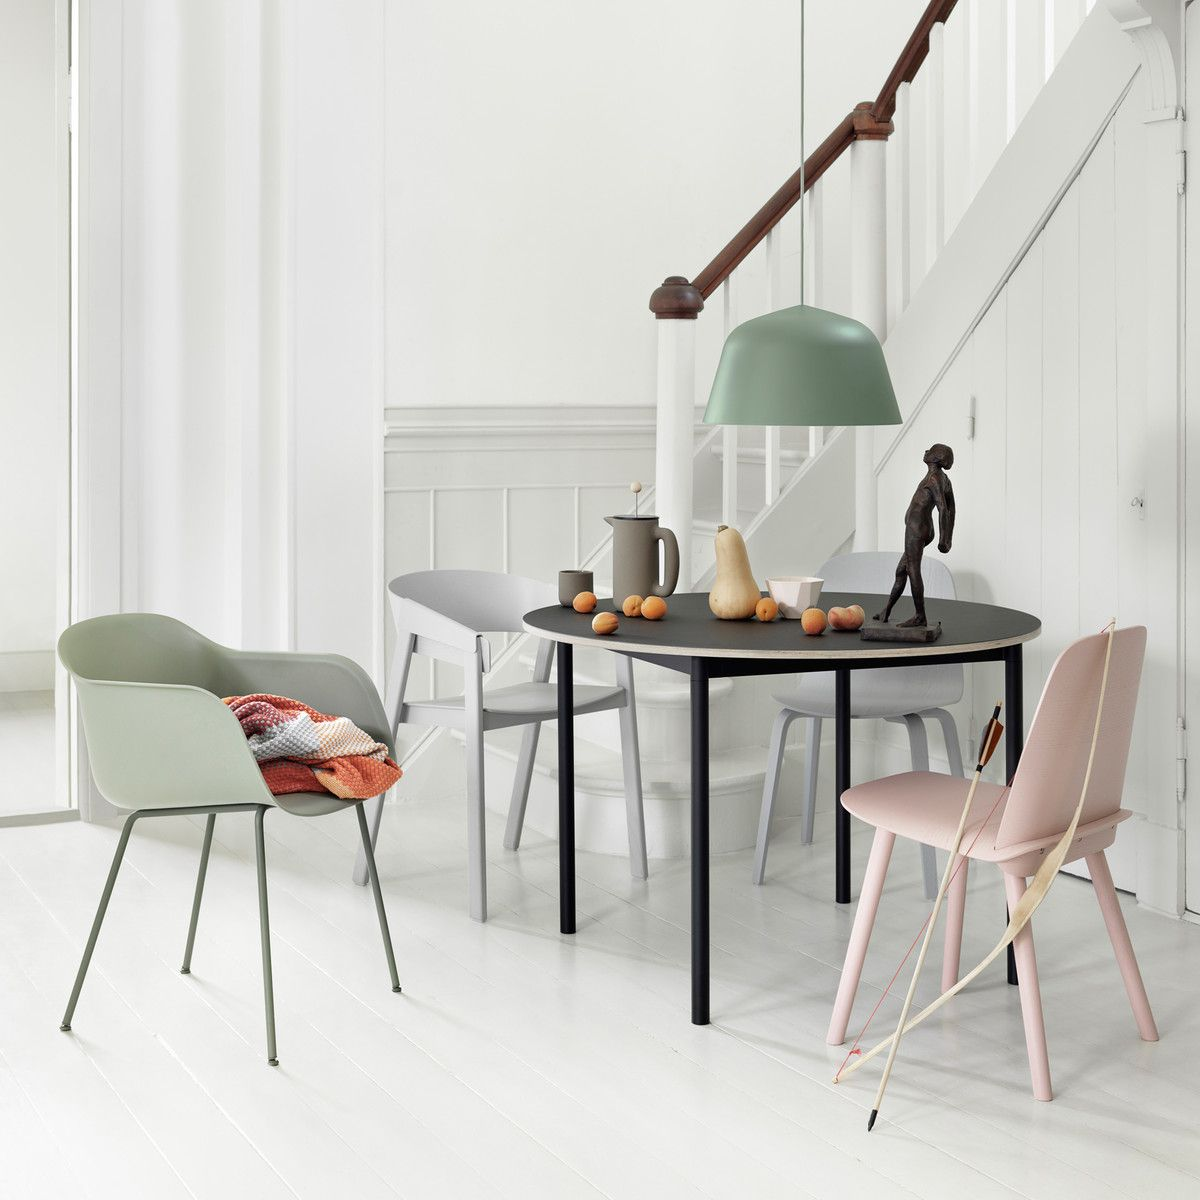 Muuto Base Table 110 cm